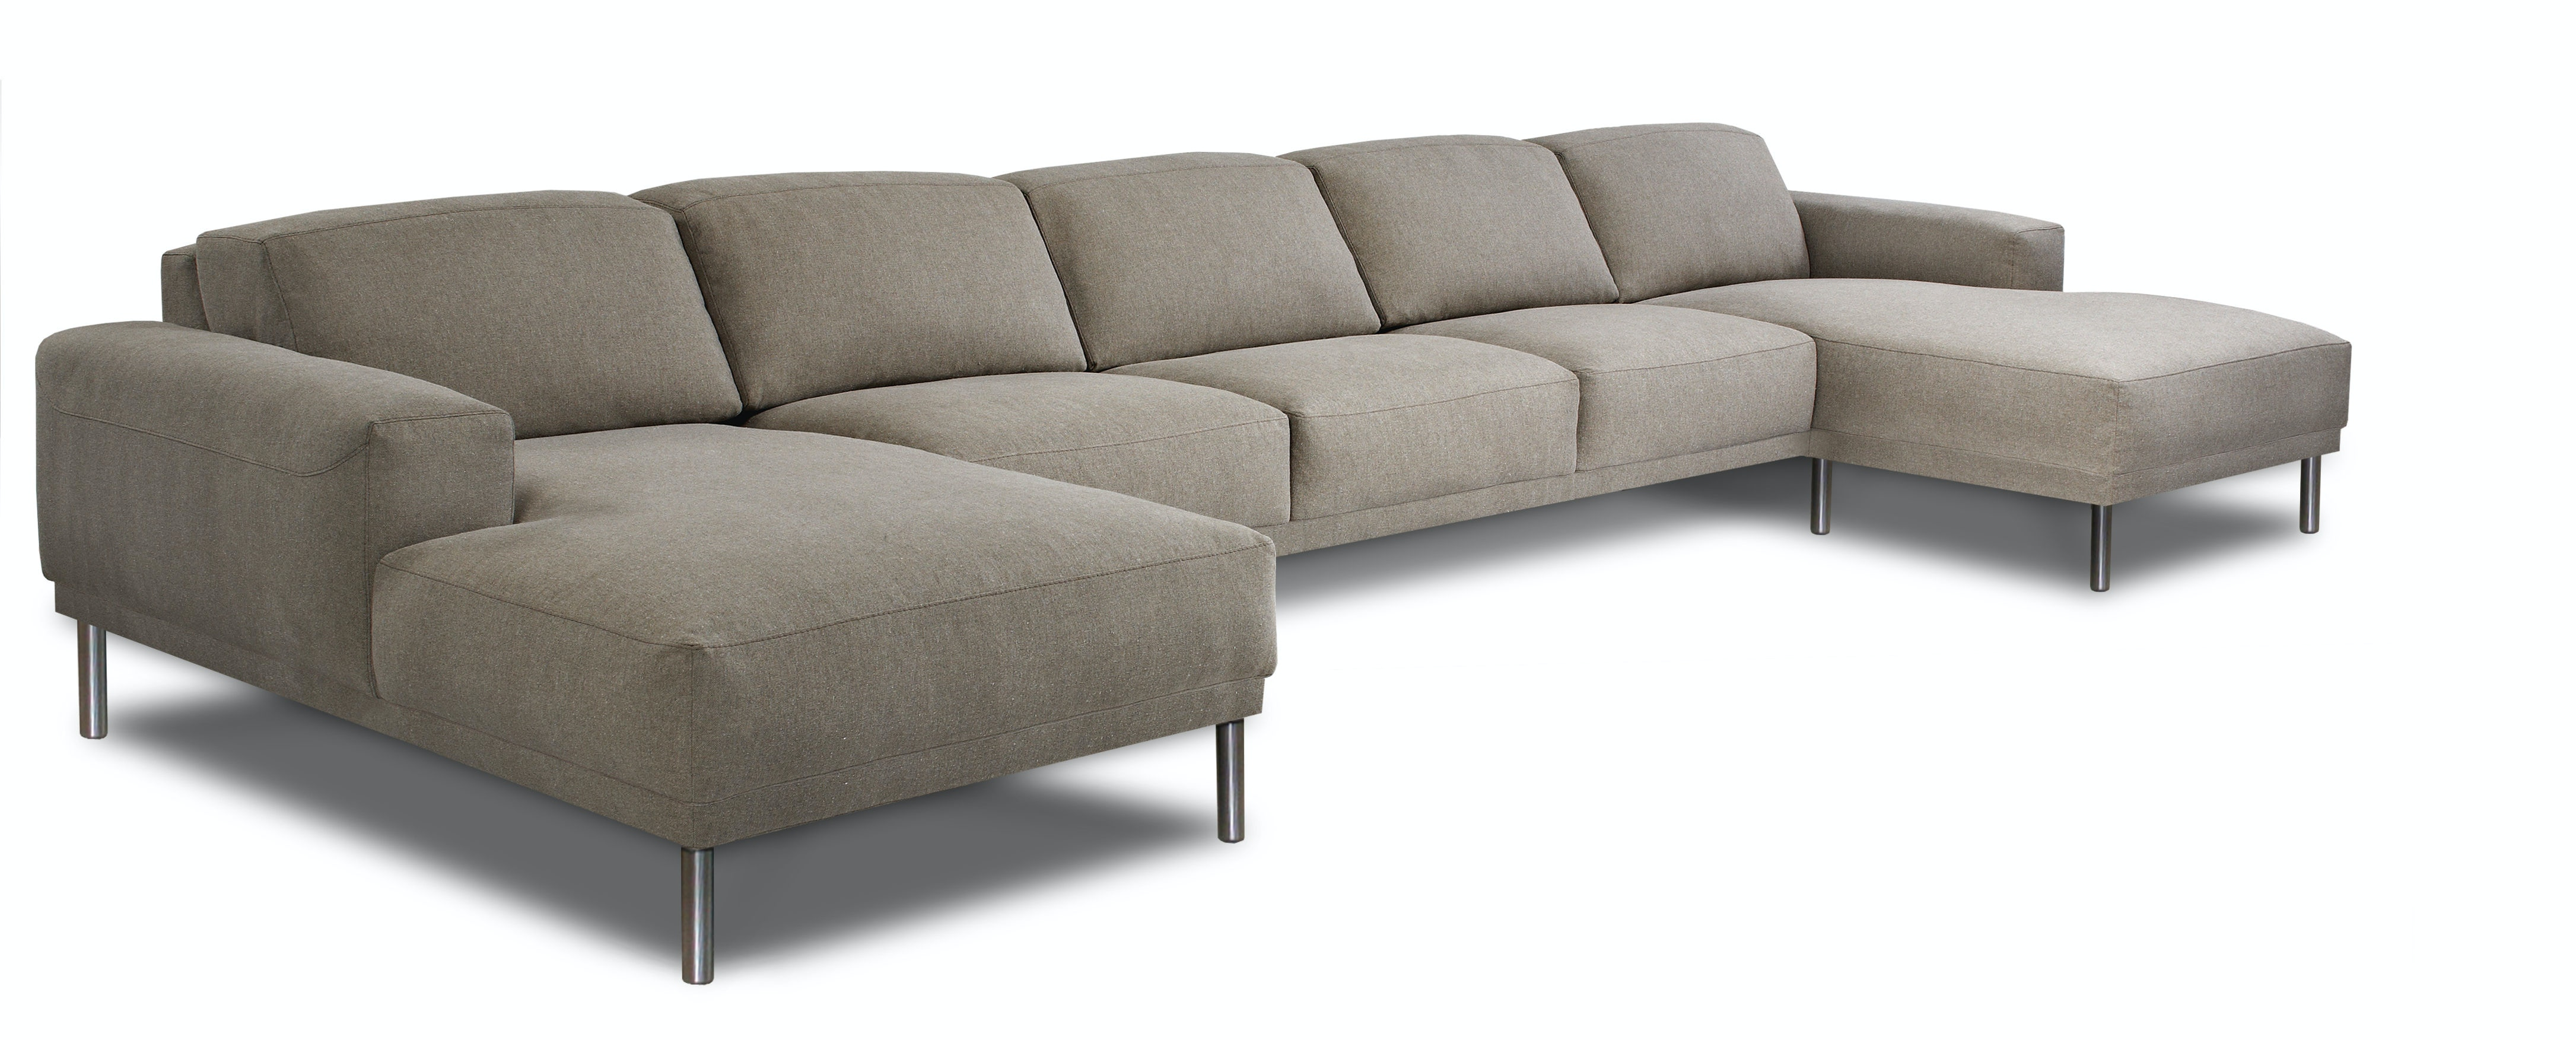 Superieur American Leather Meyer Sectional Meyer Sectional